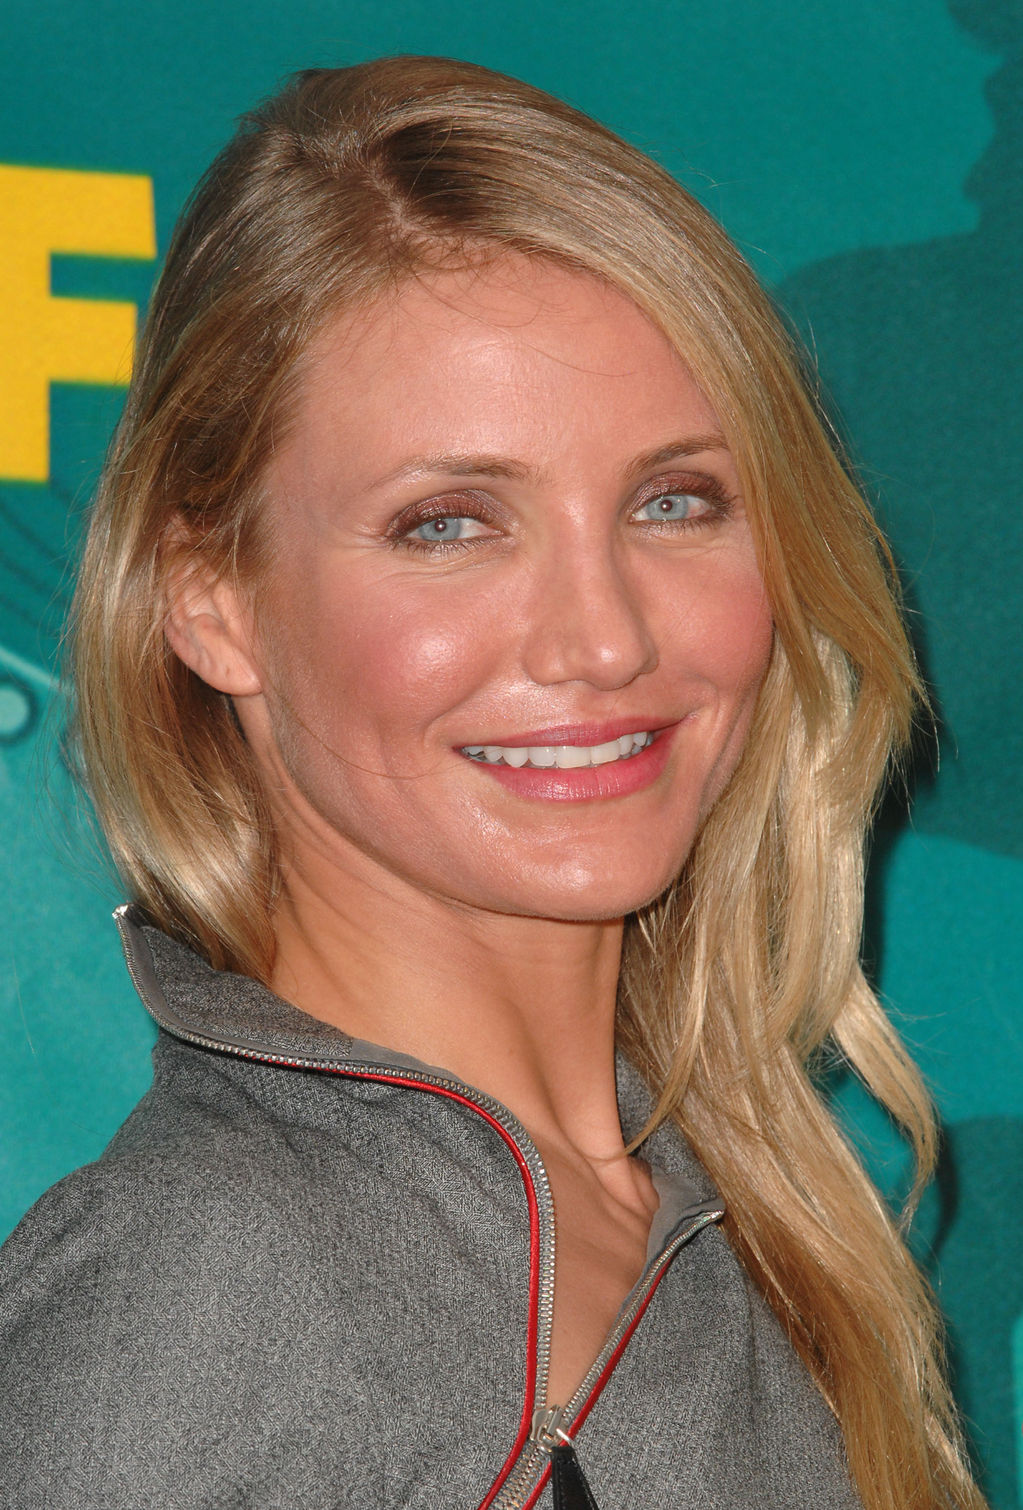 Cameron Diaz Before and After Photos | SurgeryStars Lindsay Lohan Imdb